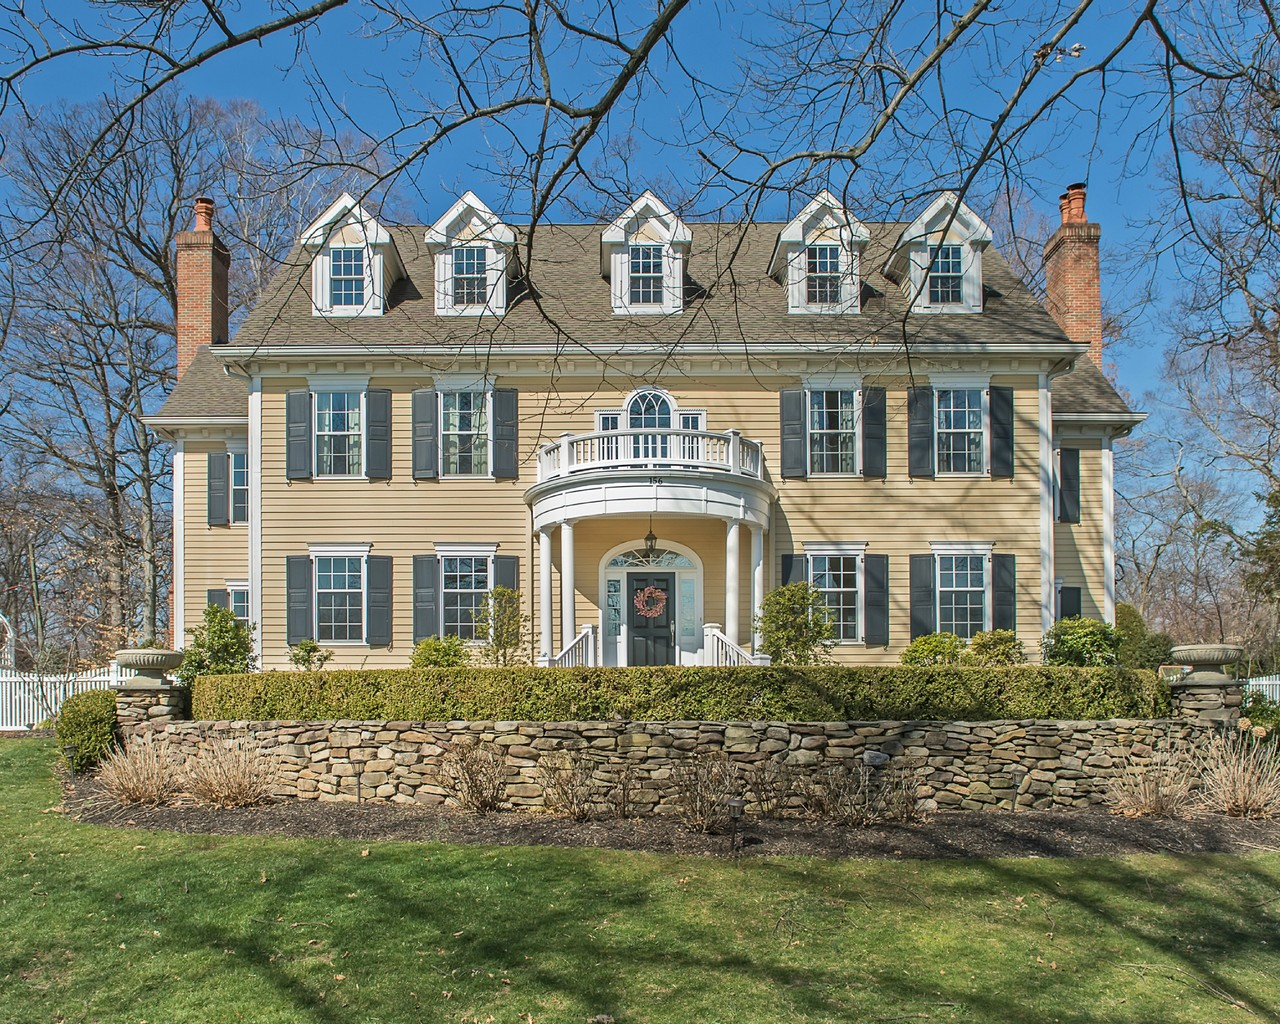 Single Family Home for Sale at Stately Glen Ridge Center Hall Colonial 156 Ridgewood Avenue Glen Ridge, New Jersey 07028 United States